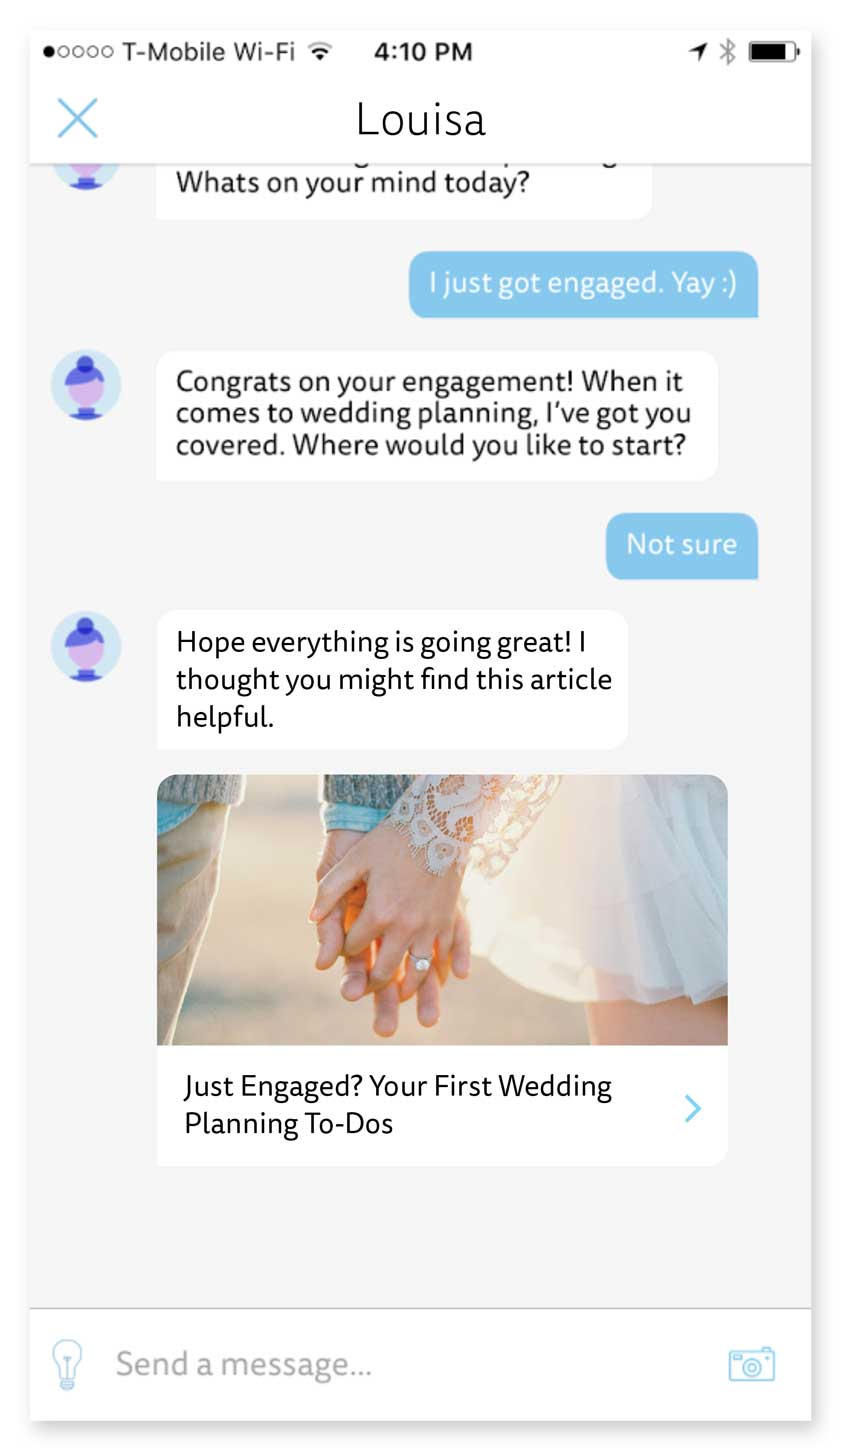 In-Chat Content Curation - Depending on the user's answers to automated questions, (bot) Louisa would suggest an article from TheKnot.com, to highlight Louisa's value as content curator.